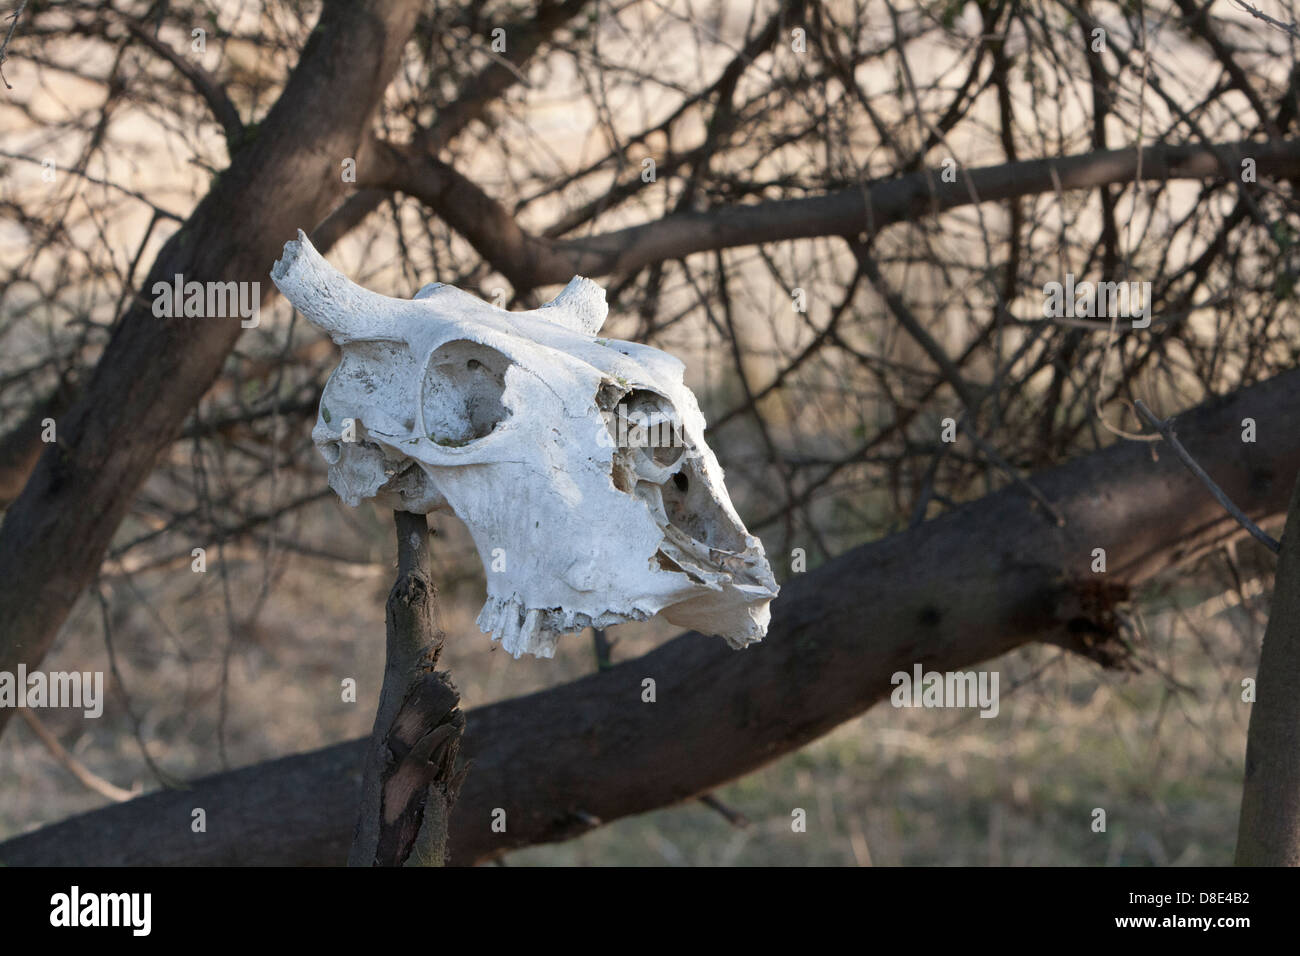 The Cattle Head Skeleton at Keoladeo Bird Sanctuary Rajasthan . - Stock Image